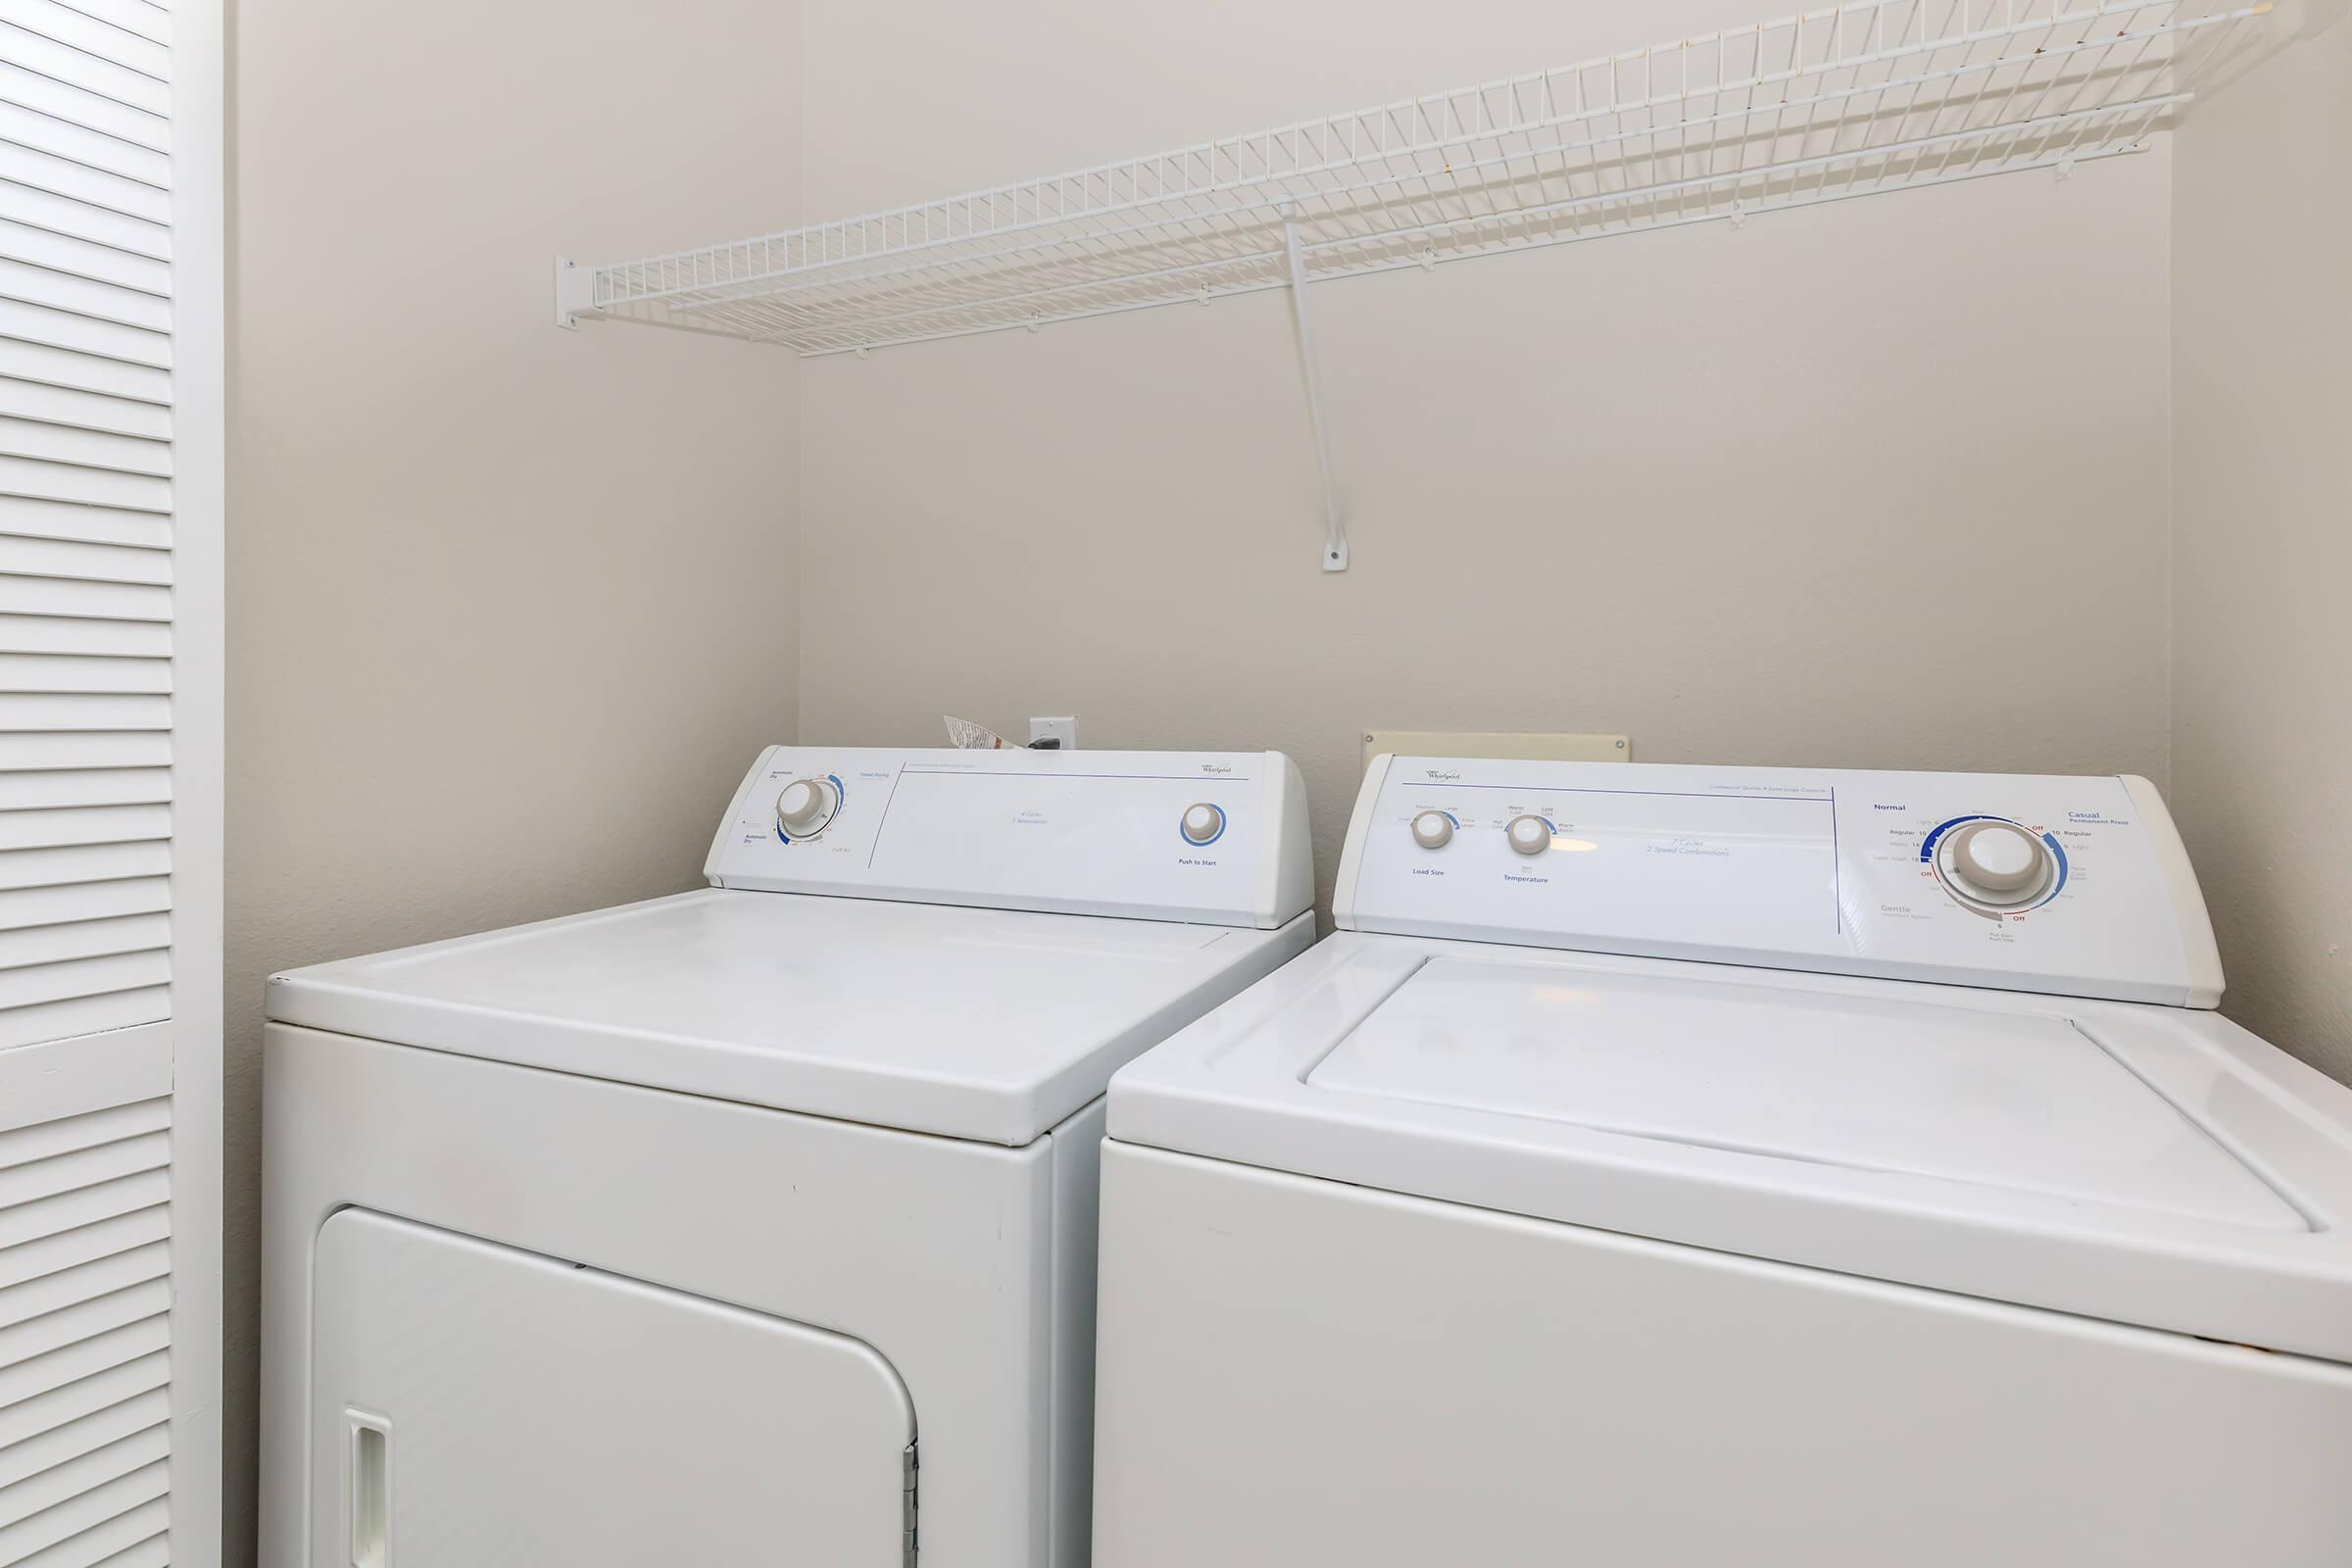 Connected washer and dryer in laundry closet